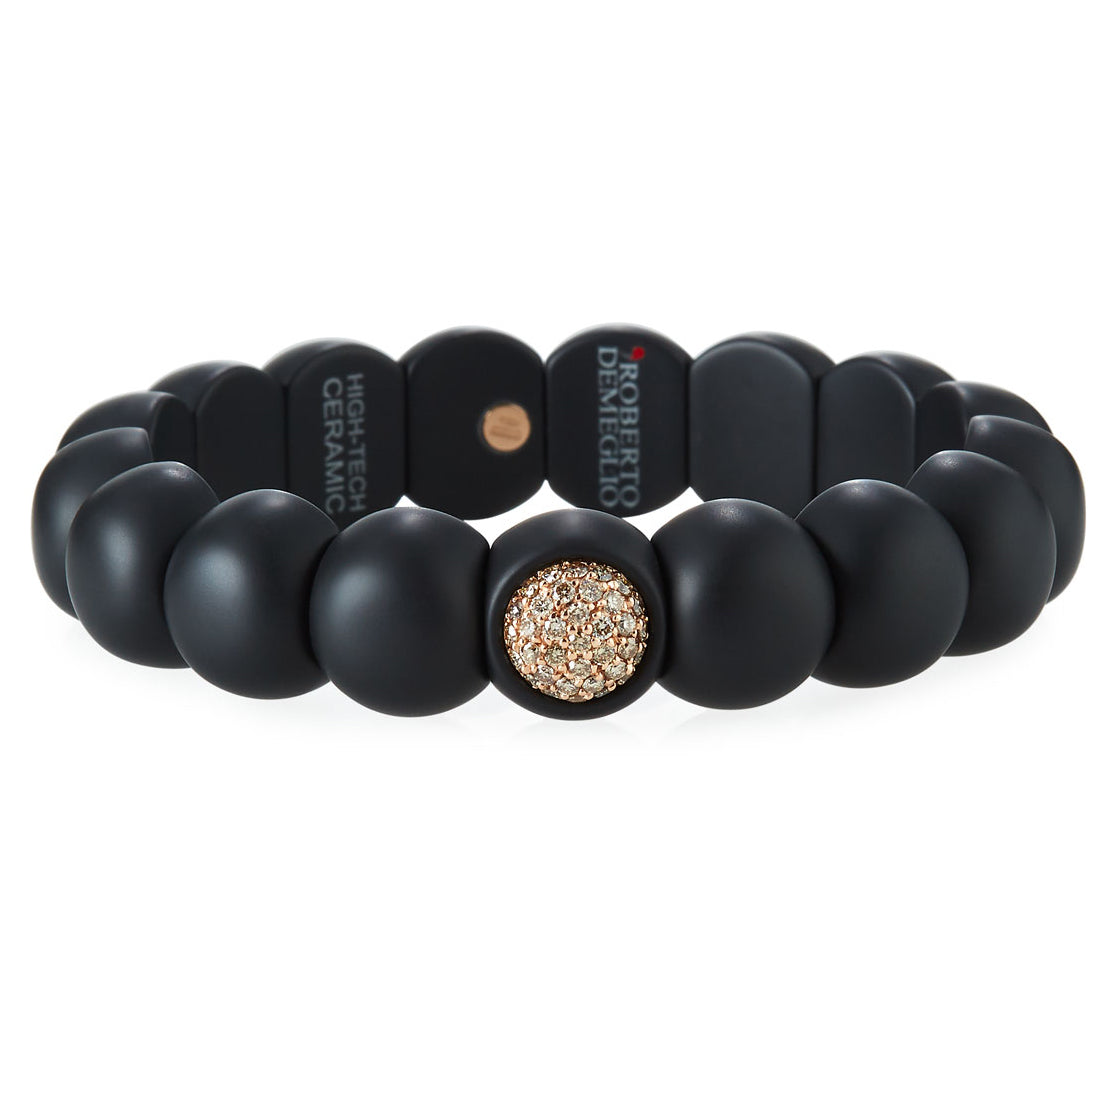 Roberto Demeglio Dama Elastic Stretch Bracelet in Black Matte Ceramic with 18K Rose Gold Champagne Diamonds .48 carats